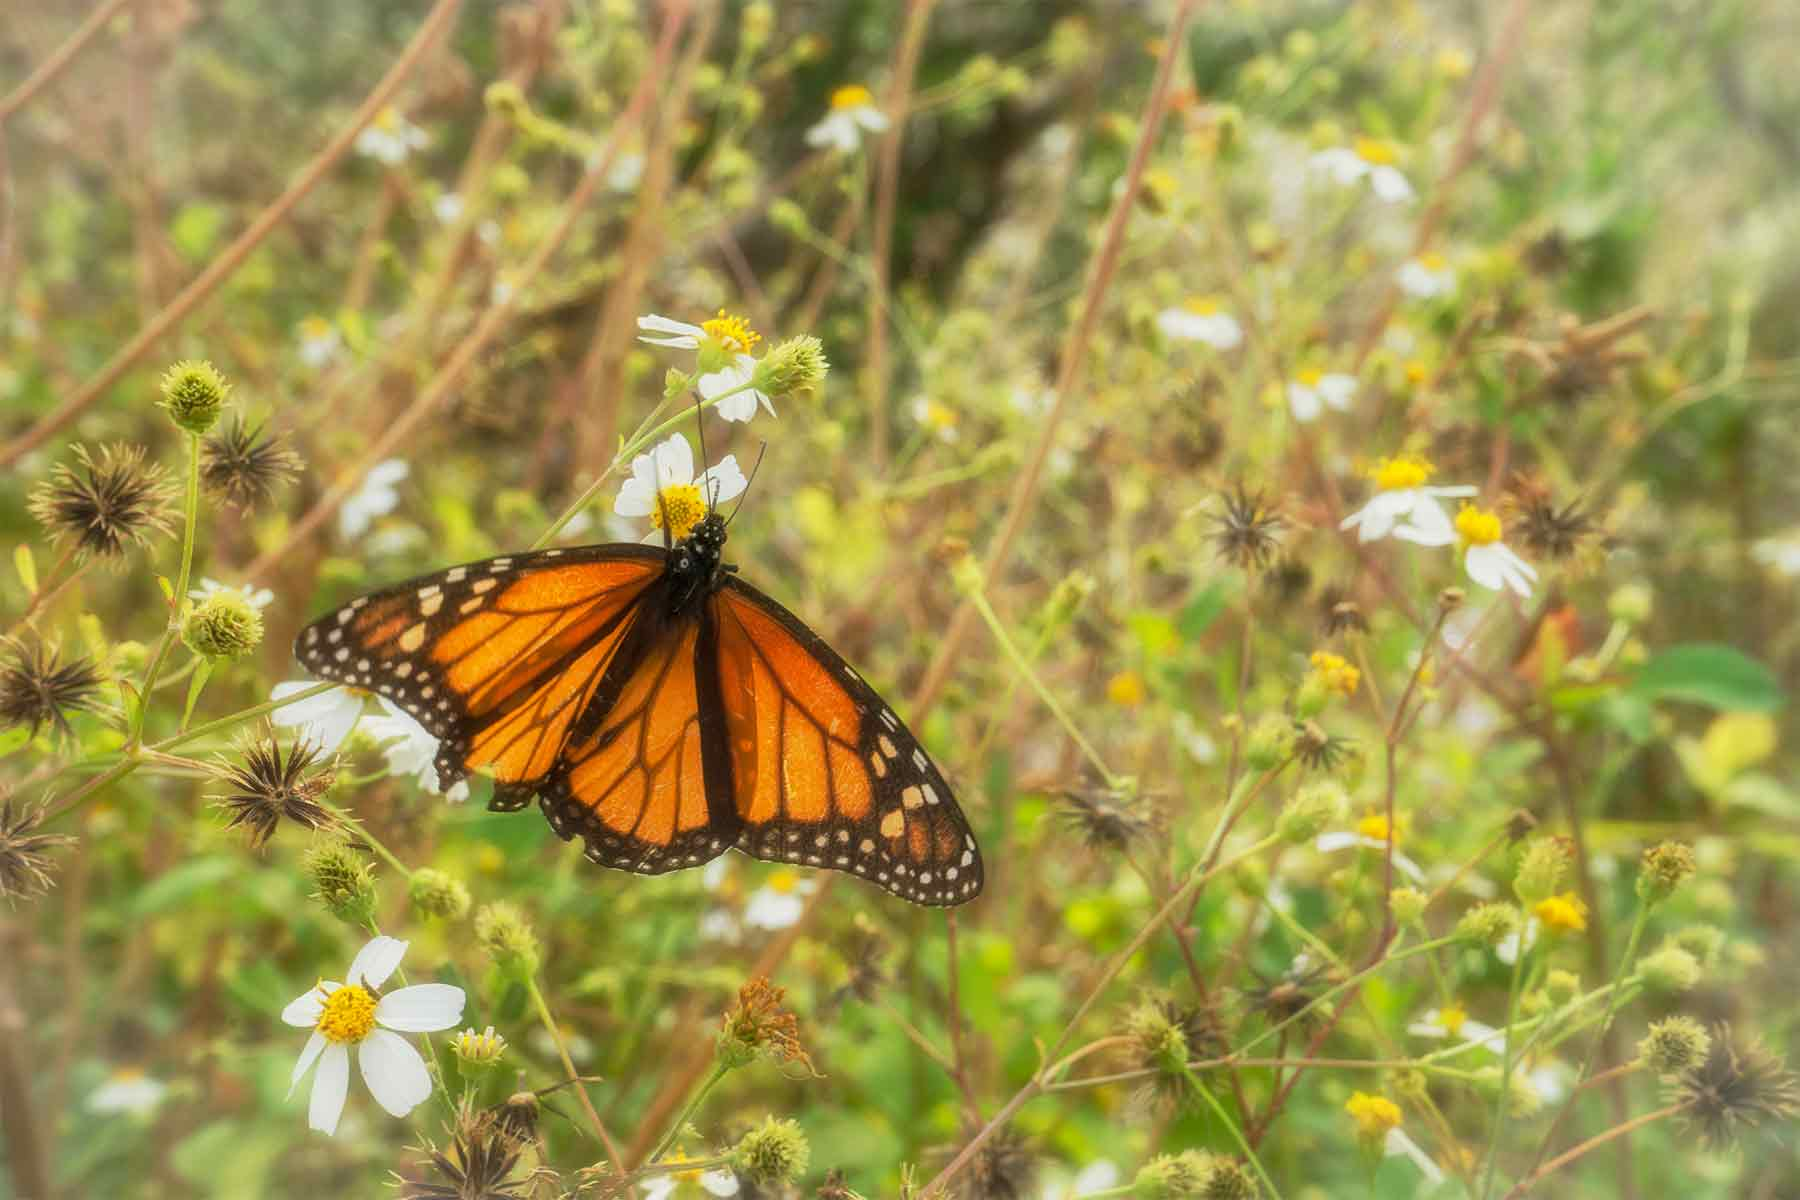 Monarch butterfly on wildflower at St. Marks National Wildlife Refuge in Florida